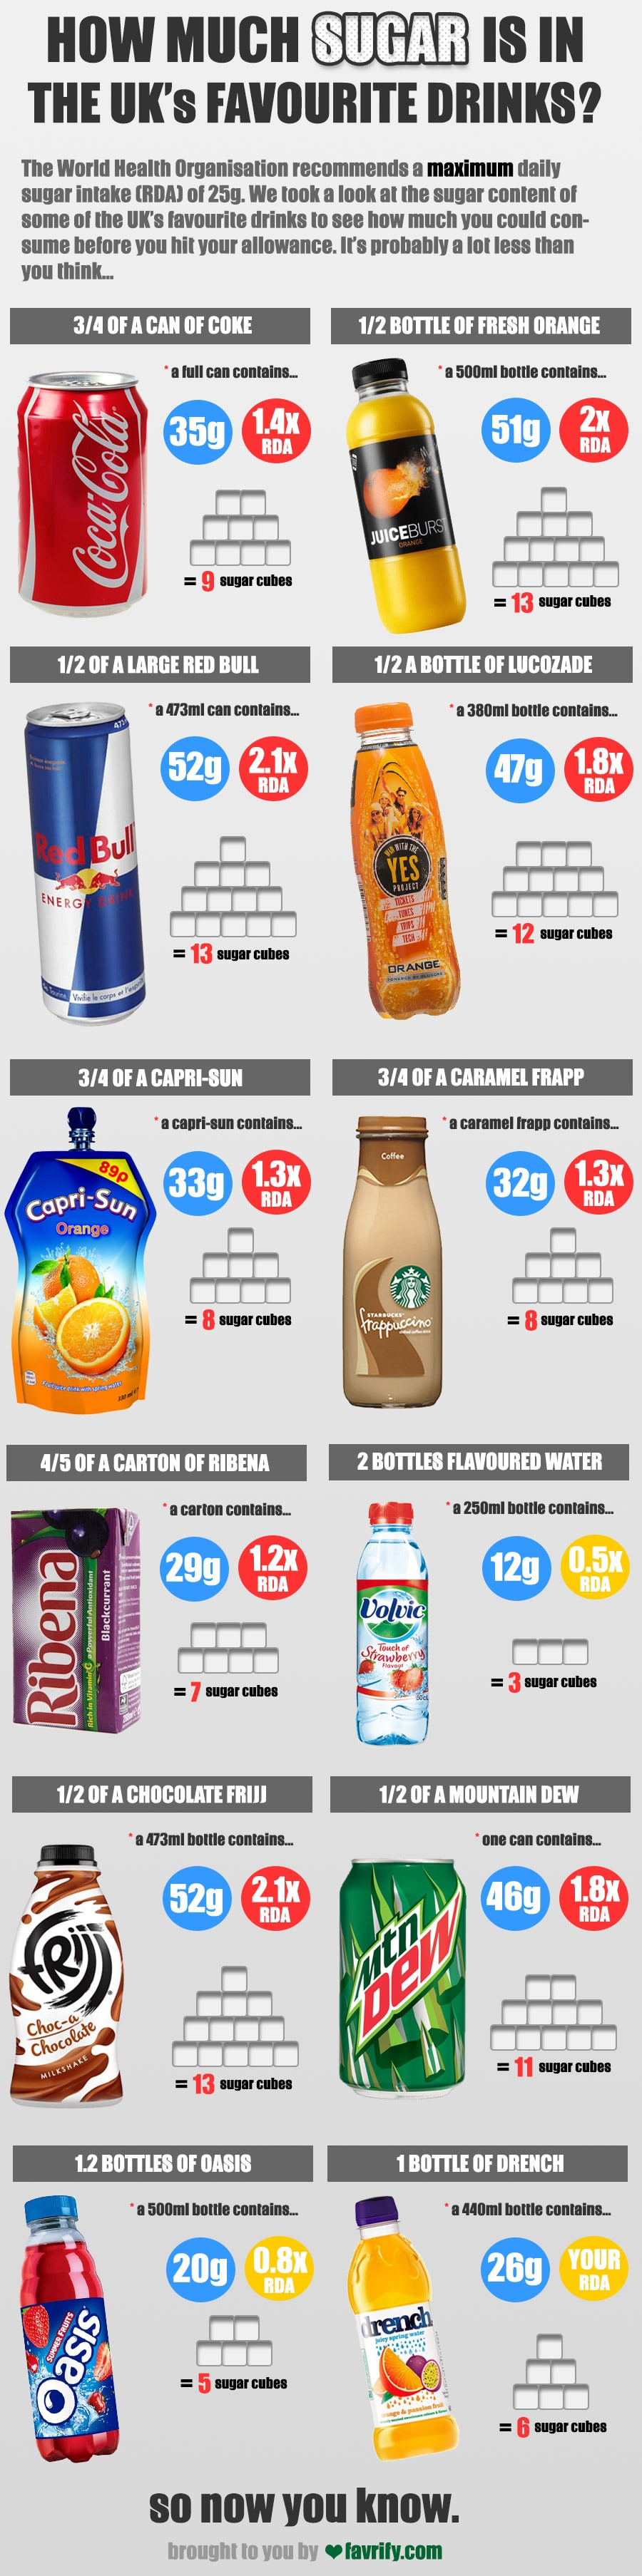 Infographic shows how much sugar is in the UK's favourite drinks.